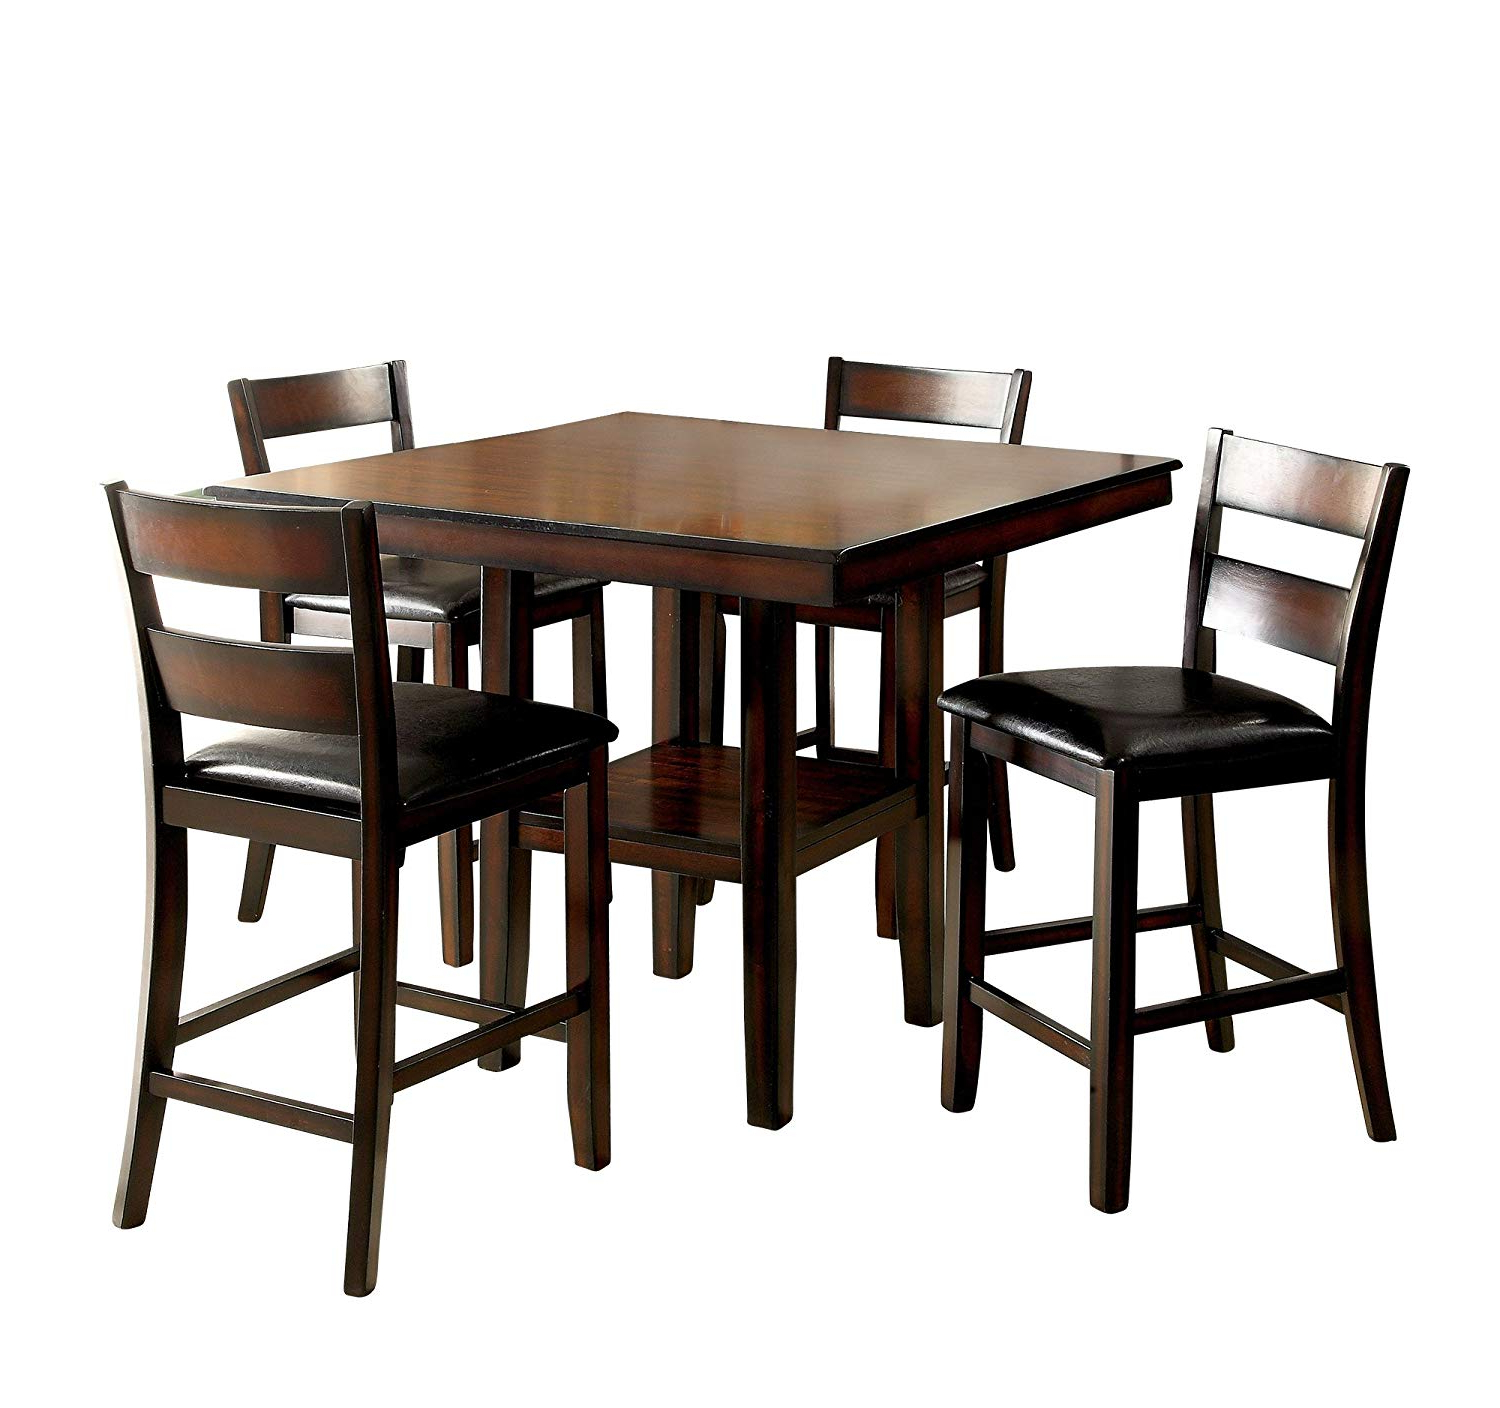 Current Homes: Inside + Out Idf 3351Pt 5Pk Jerrison Transitional 5 Piece Dining Set With Atwood Transitional Square Dining Tables (View 16 of 30)